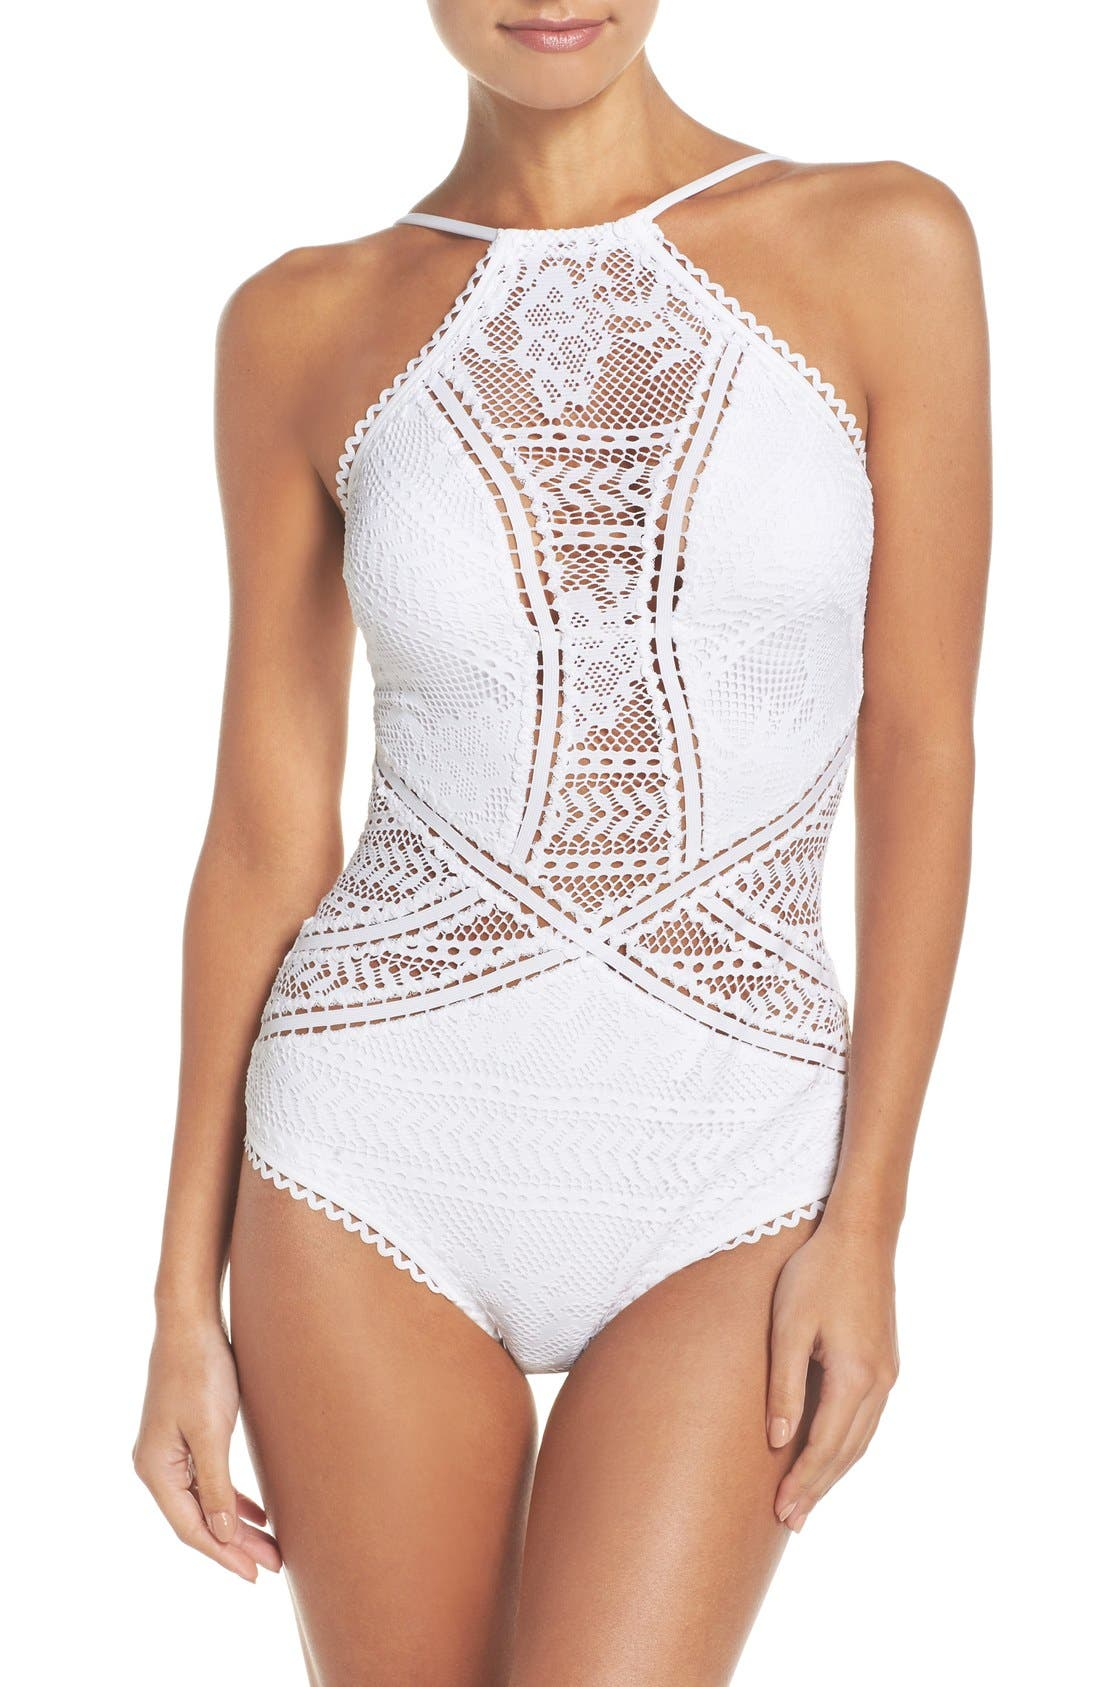 Main Image - Becca Prairie Rose Crochet One-Piece Swimsuit